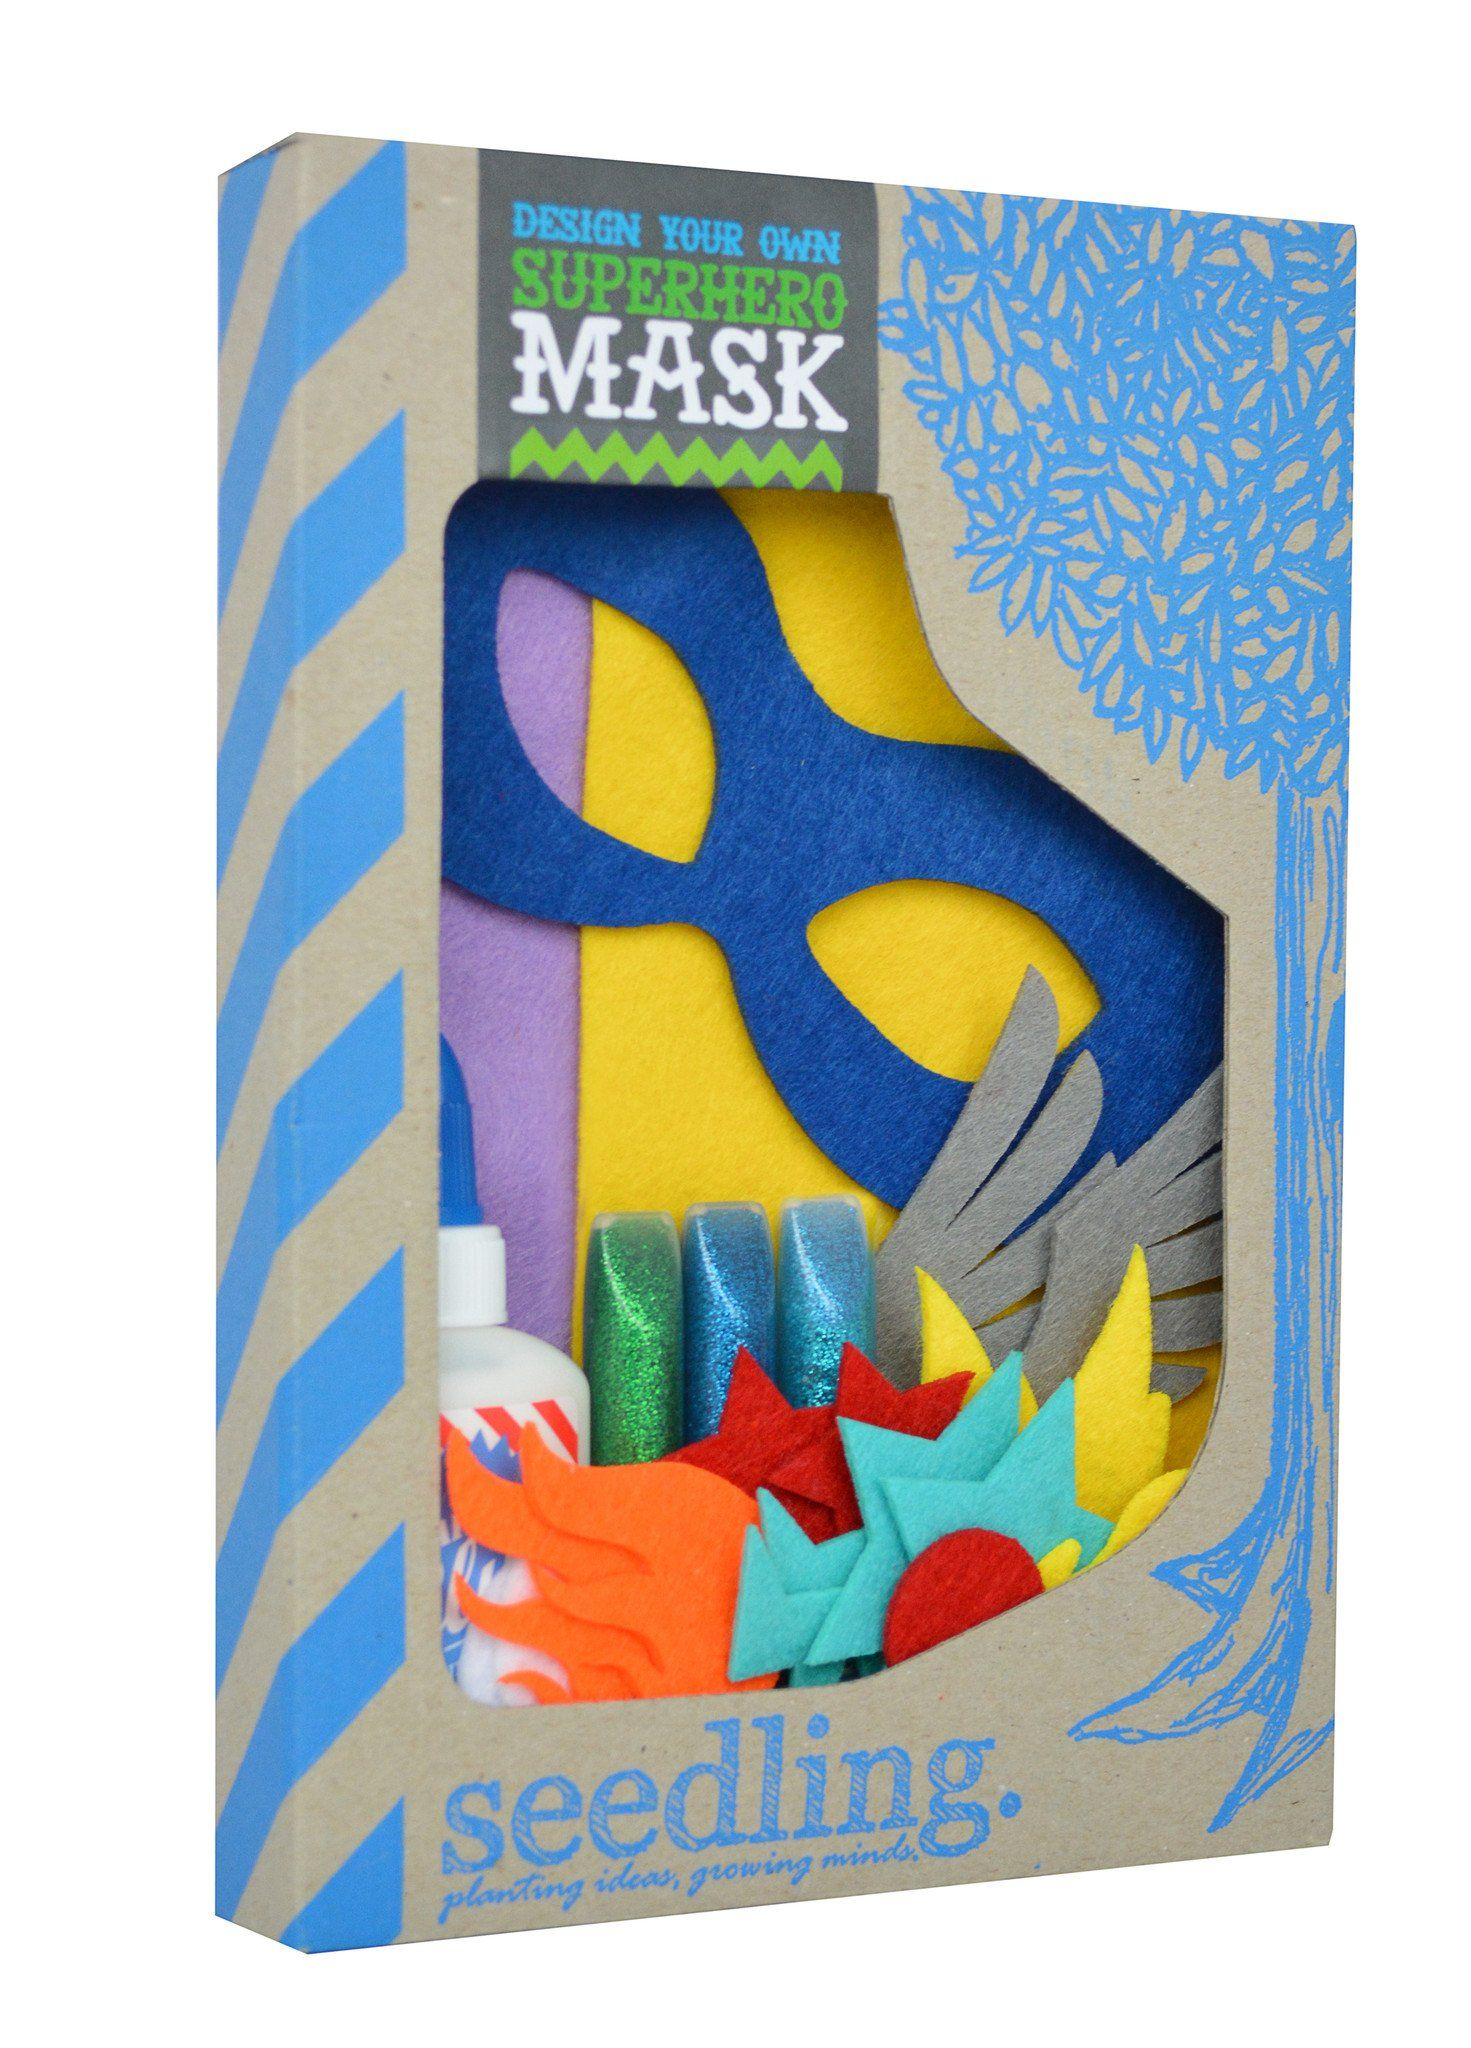 Design Your Own Superhero Mask